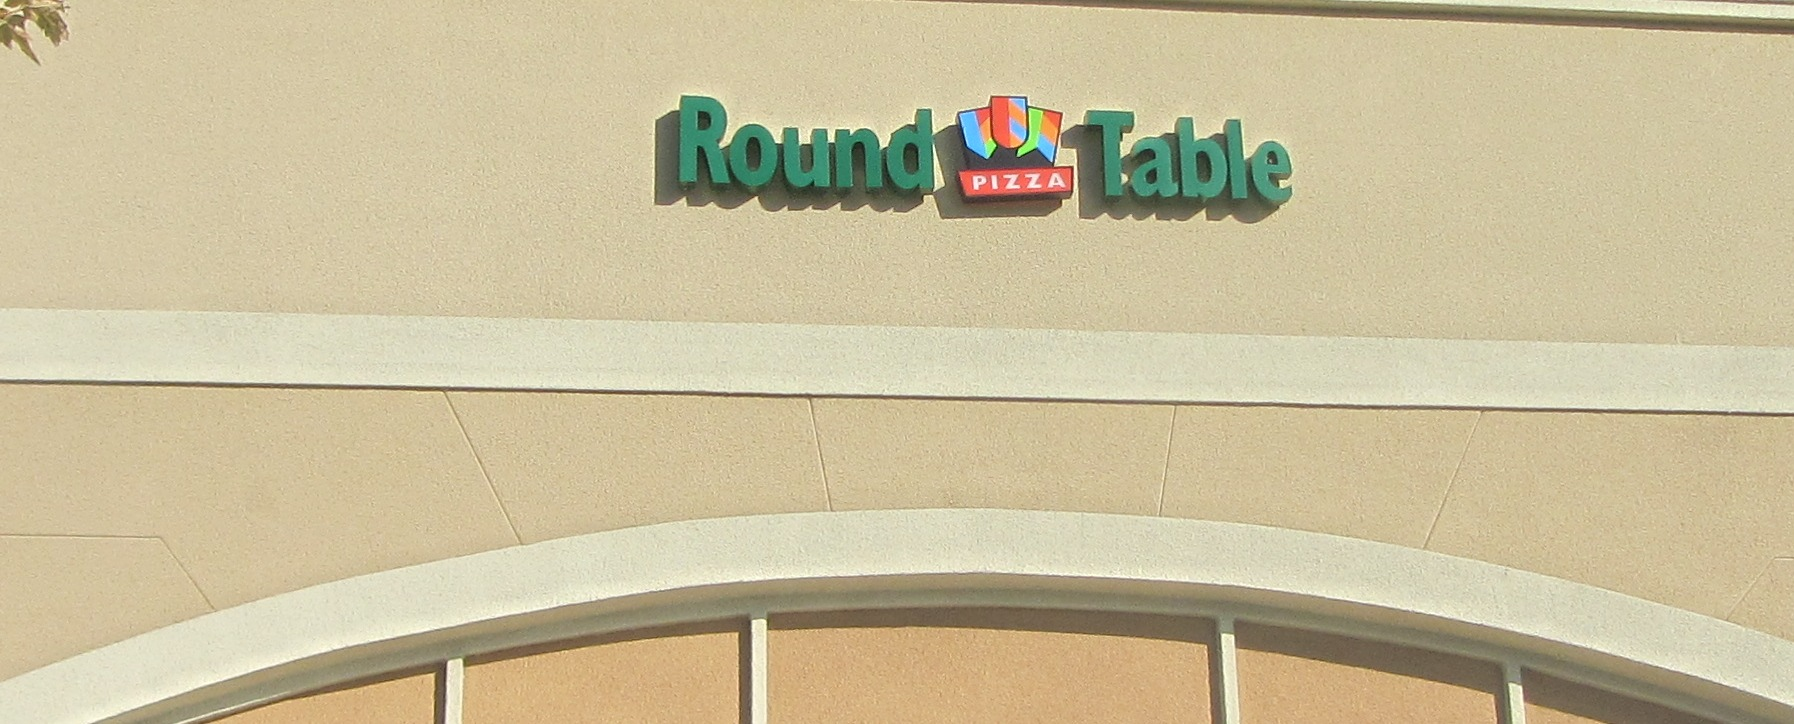 Round Table Tracy Round Table Pizza Tracy Tracy Ca Image